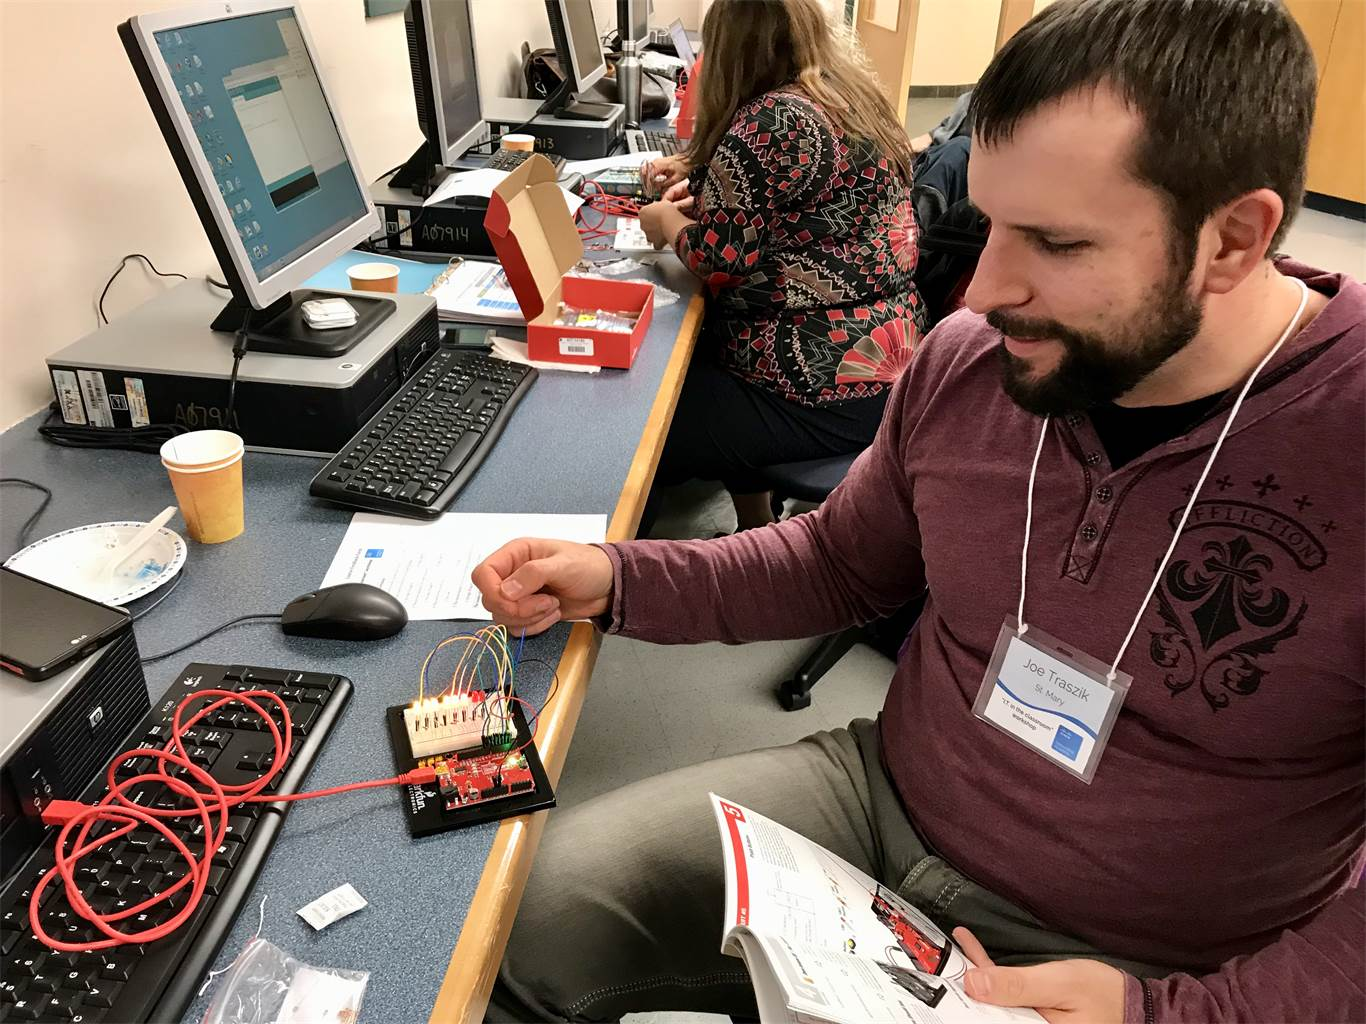 Cisco workshop promotes 21st century learning